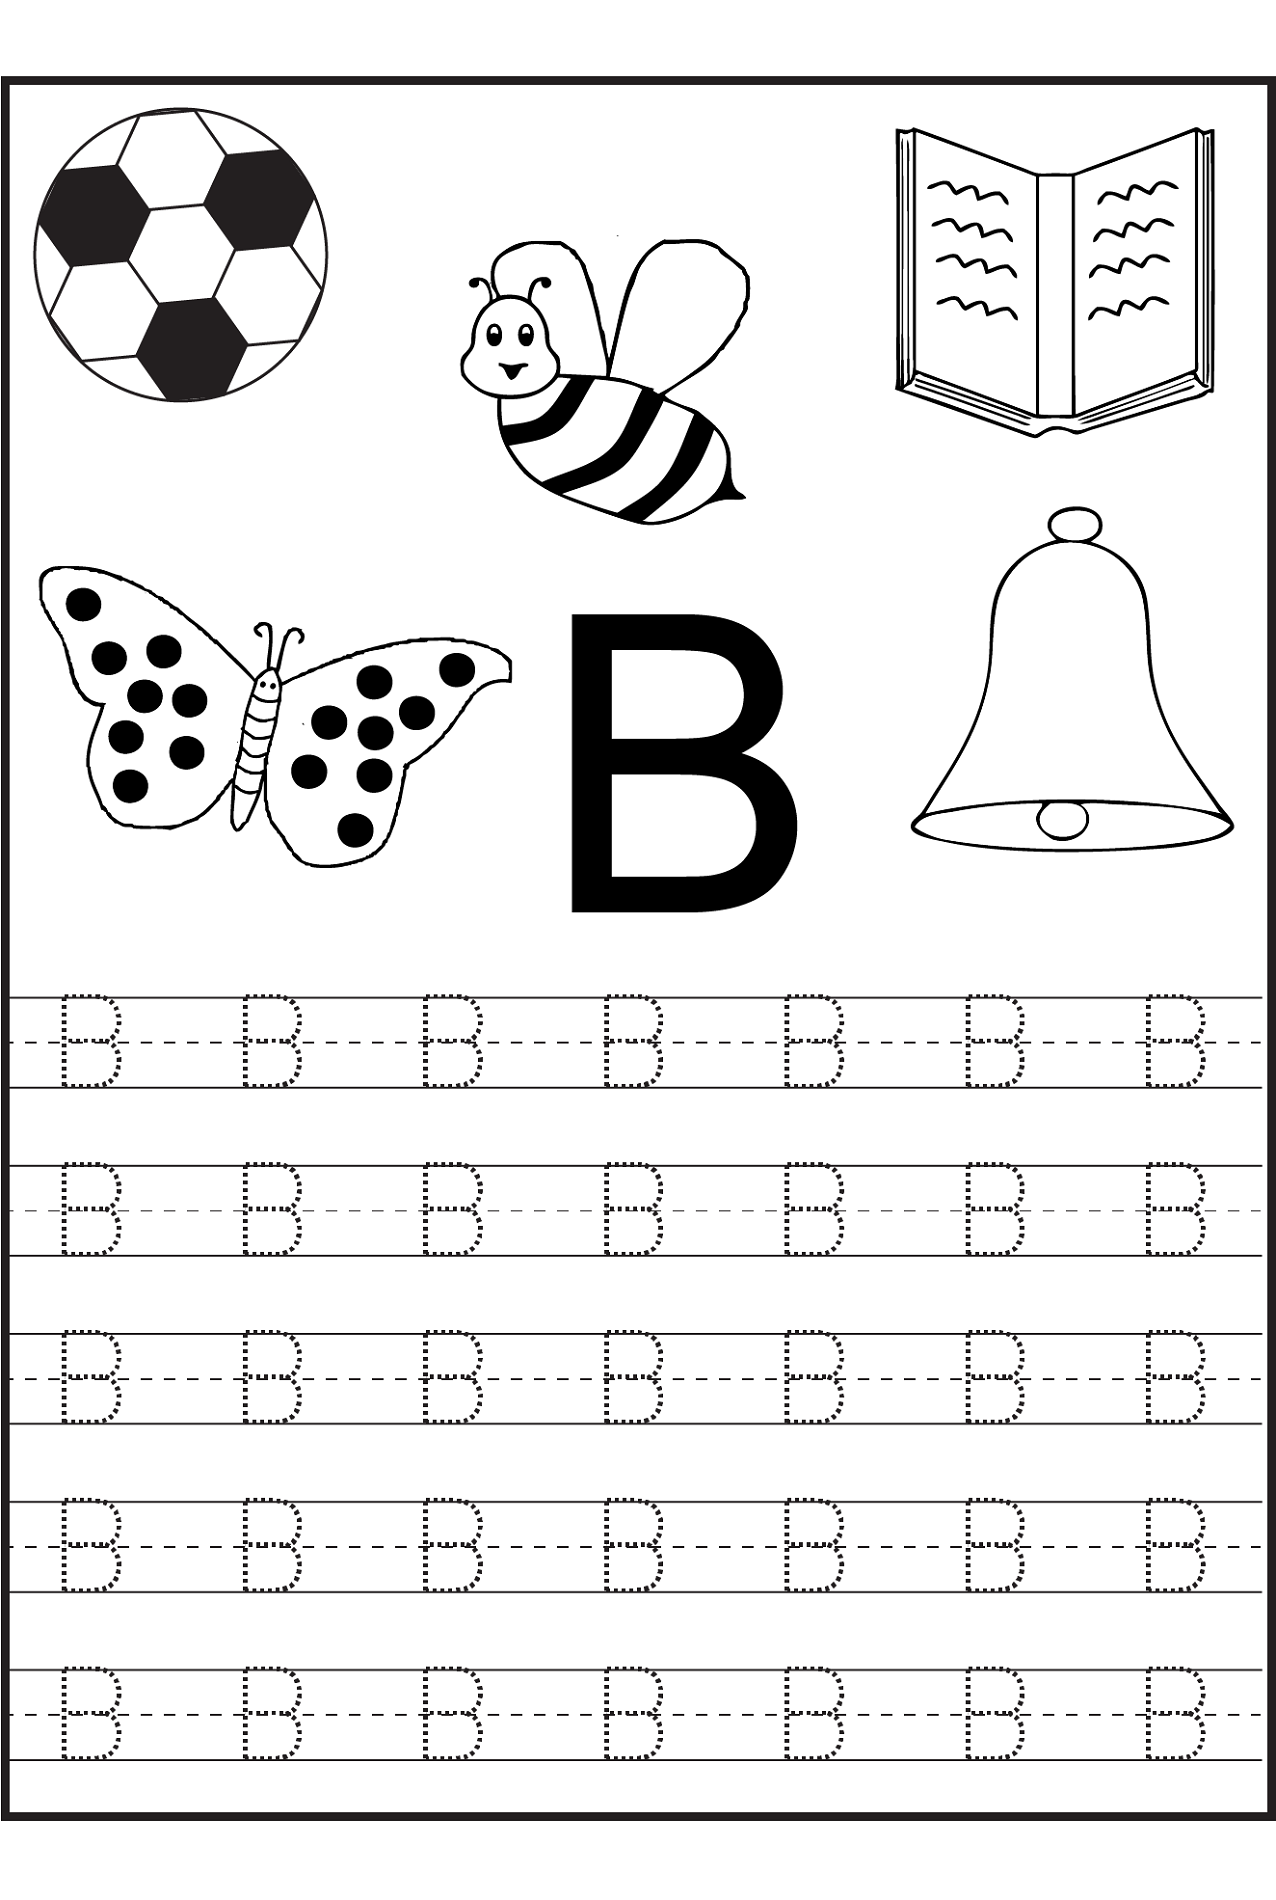 Worksheet Traceable Letters traceable letters worksheets activity shelter letter b